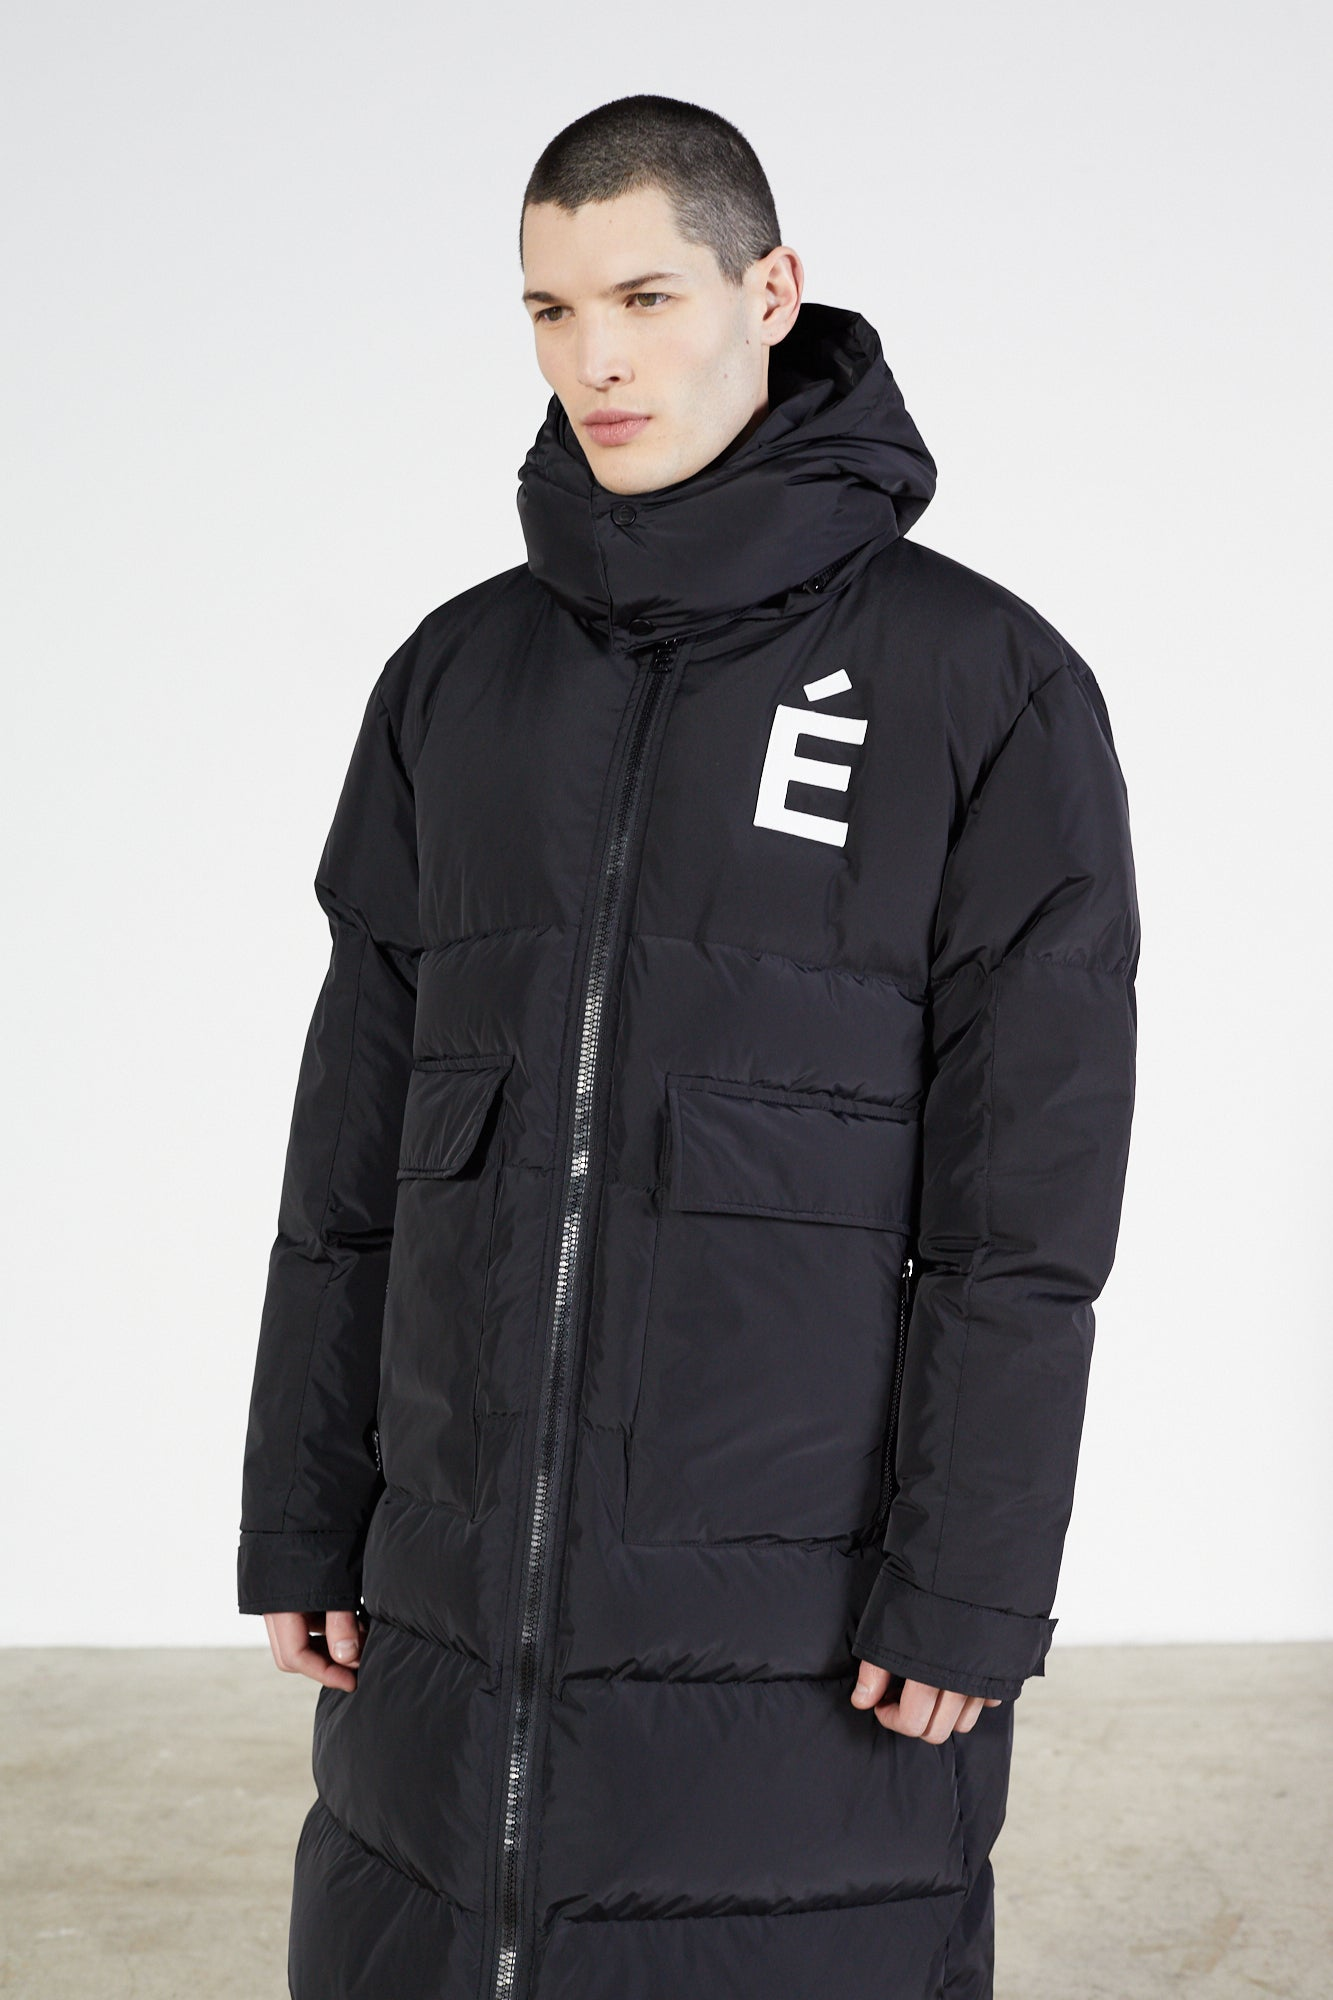 Études Game Patch Black Coat 4